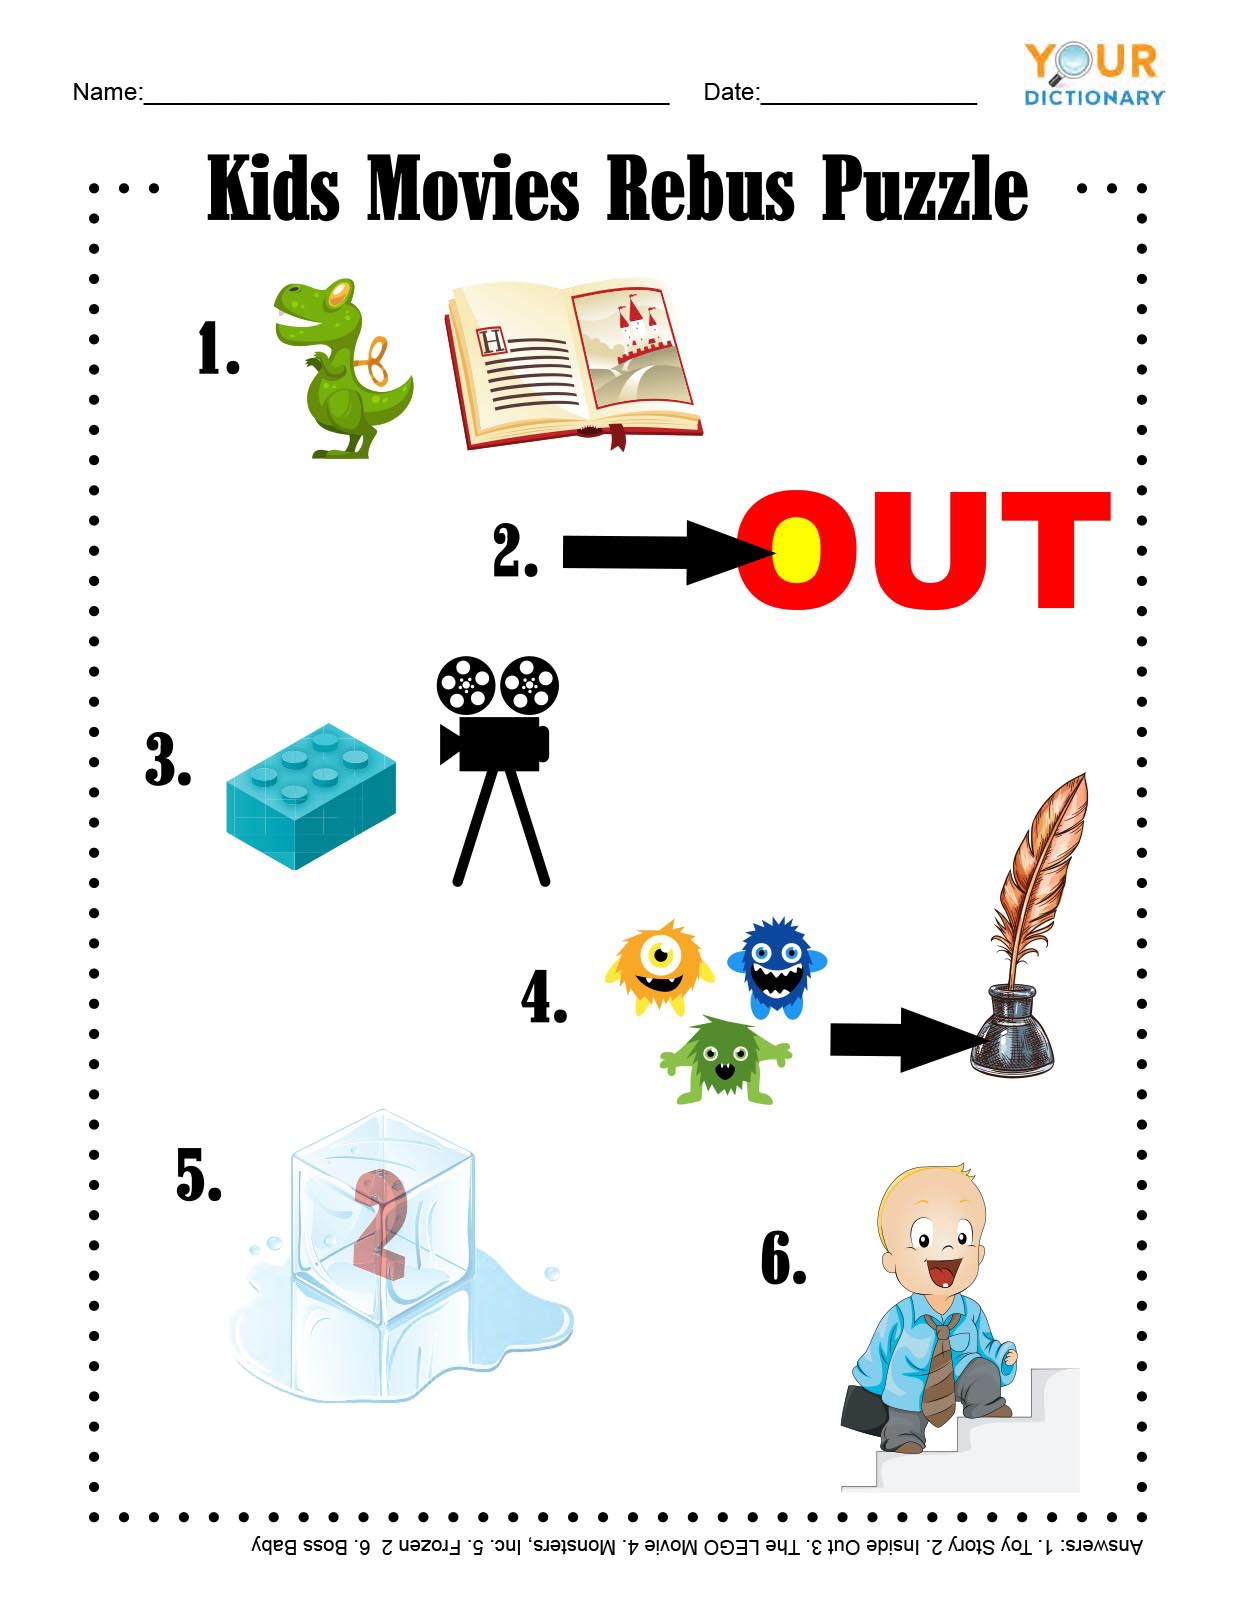 Rebus Puzzles for Middle School Fun & Free Printable Word Games for Kids